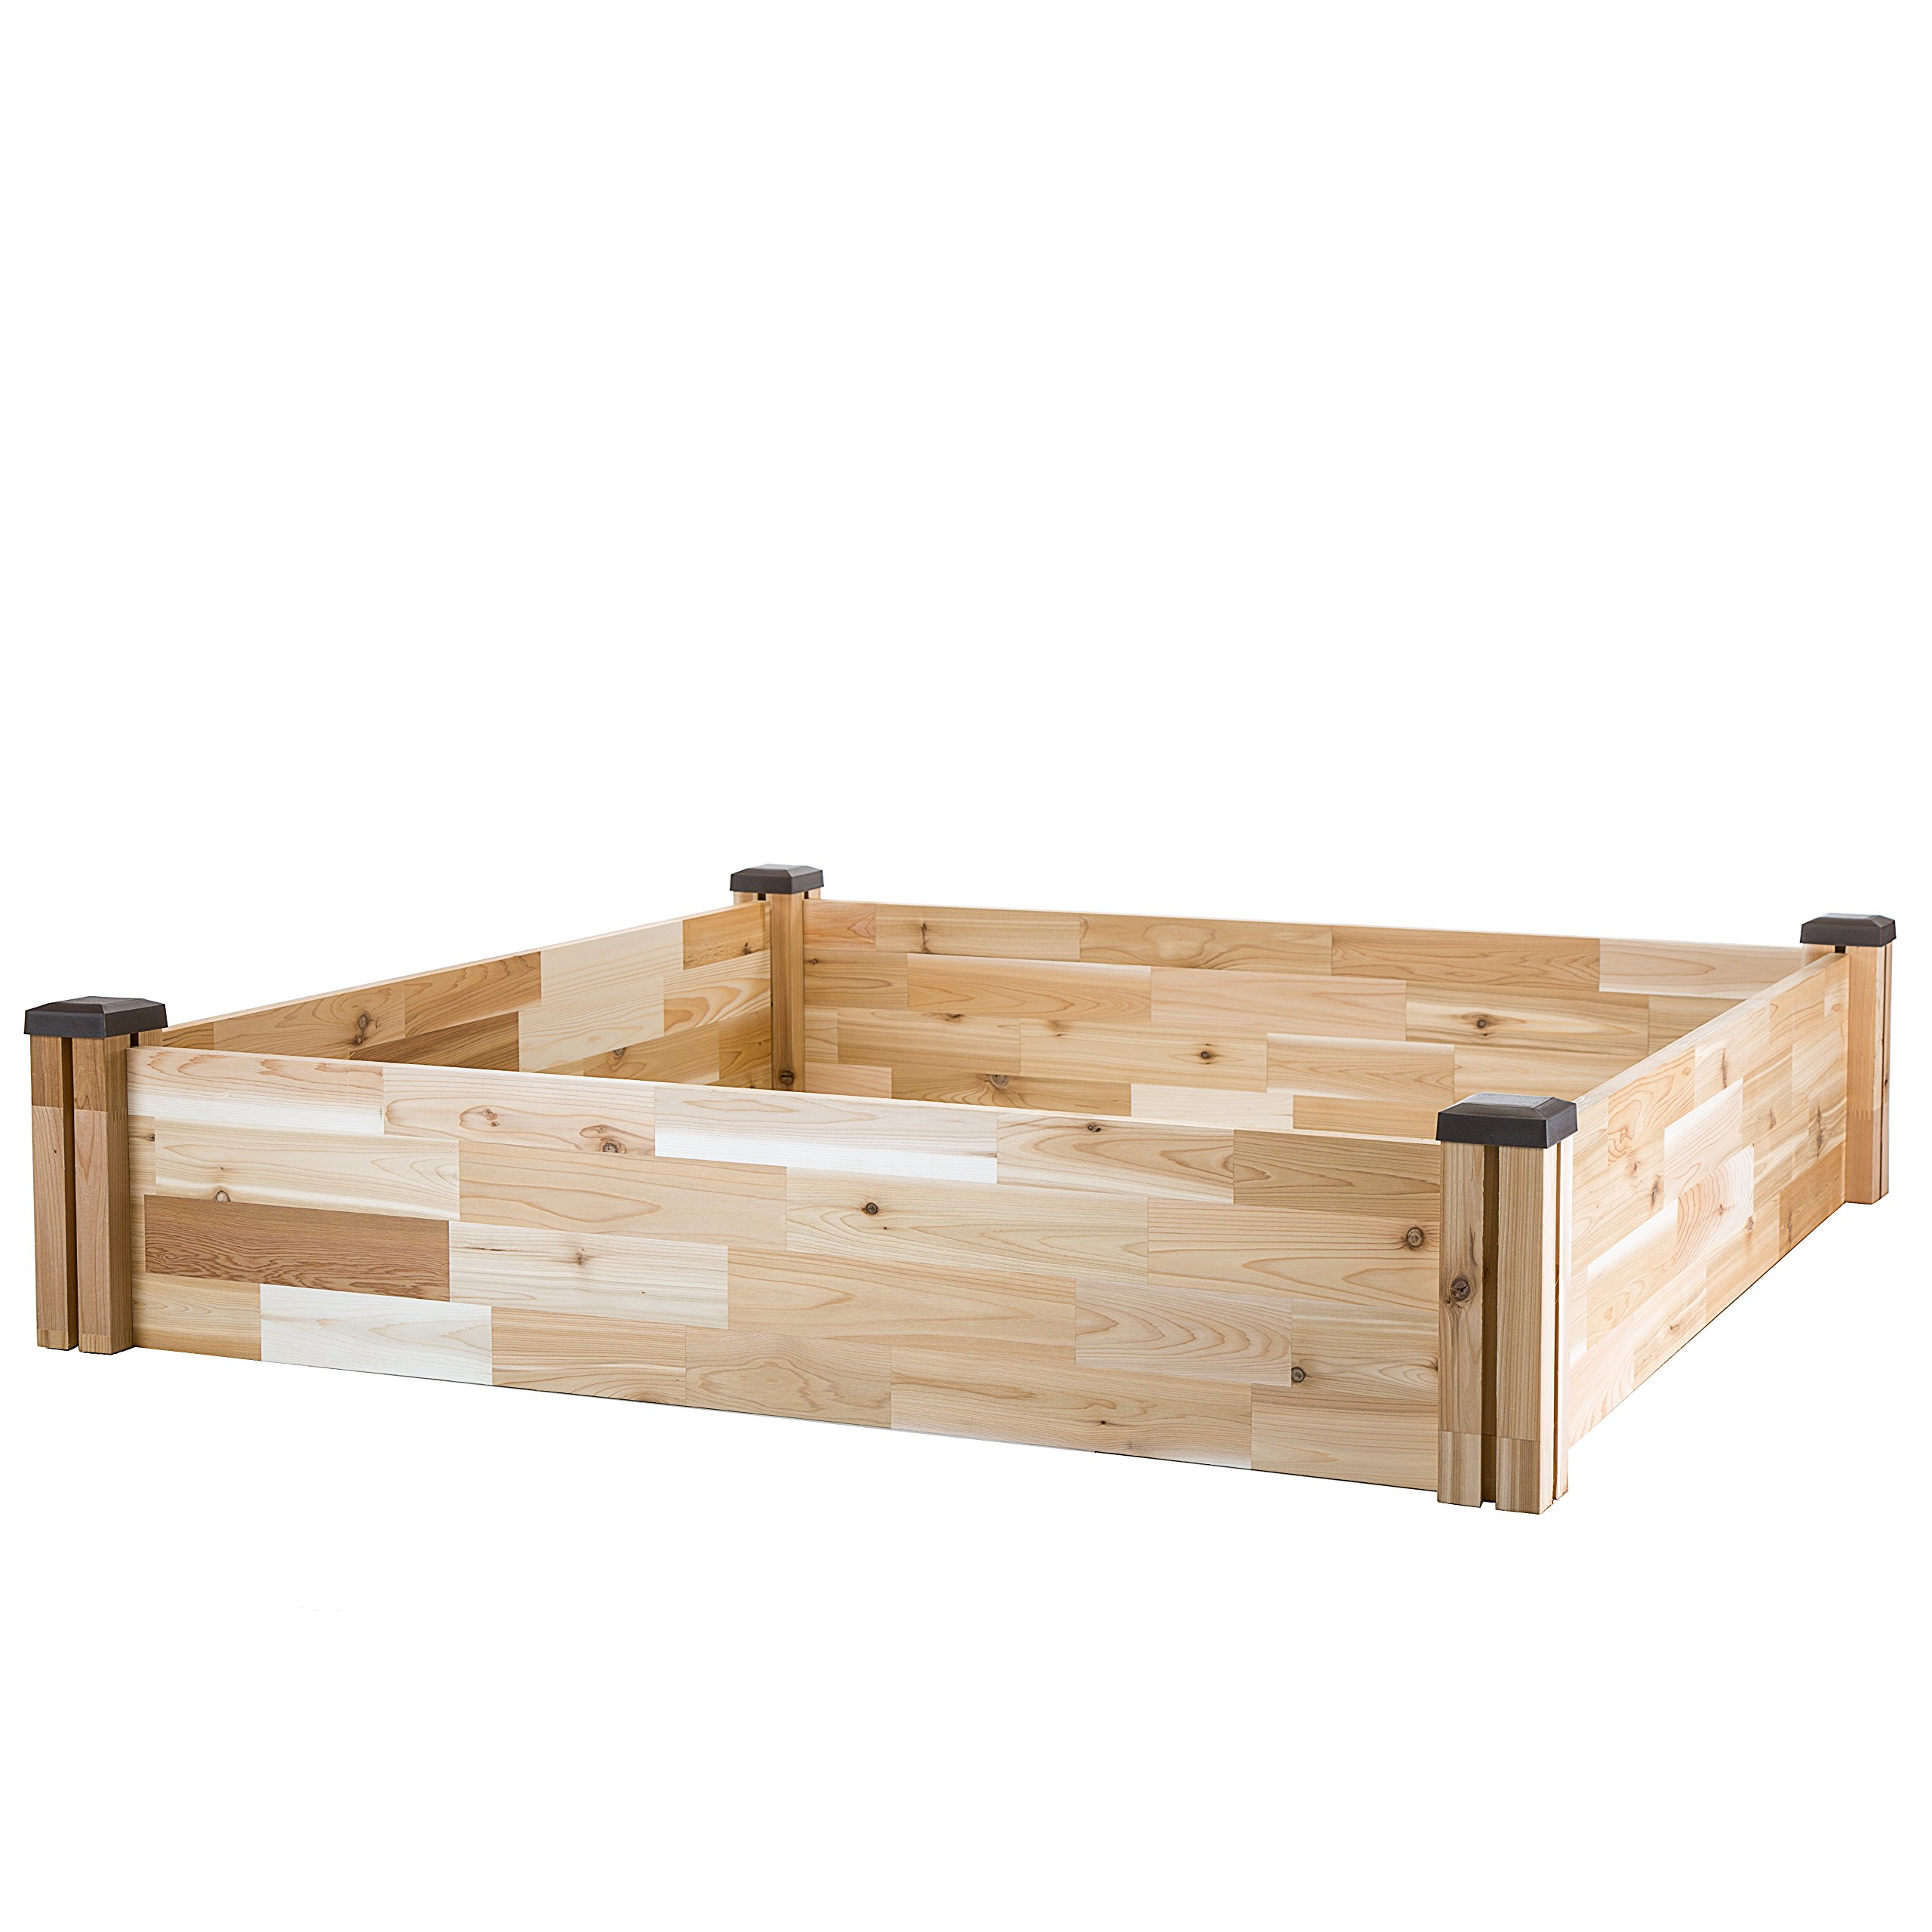 CedarCraft Raised Cedar Garden Bed (49'' X 49'' X 10''H) - Grow Fresh Vegetables, Herb Gardens, Flowers & Succulents. Beautiful Elevated Garden Bed for Your Yard and Home Gardening. No Tools Required.